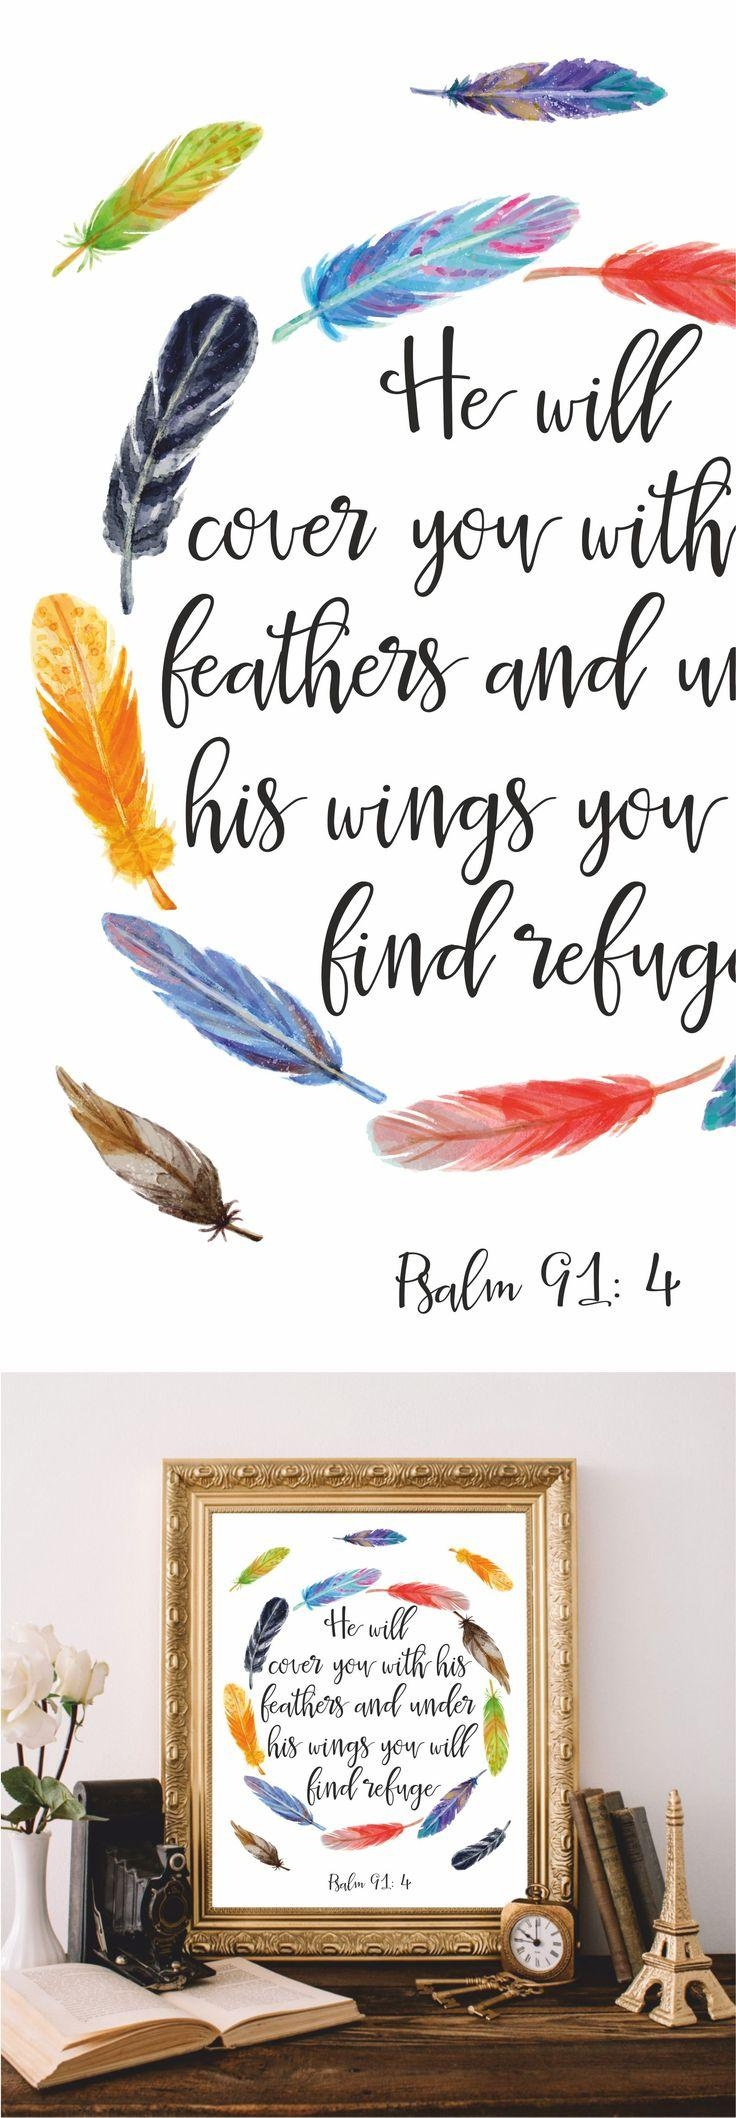 Best 25+ Scripture Wall Art Ideas On Pinterest | Christian Art With Regard To Scripture Canvas Wall Art (Image 8 of 20)